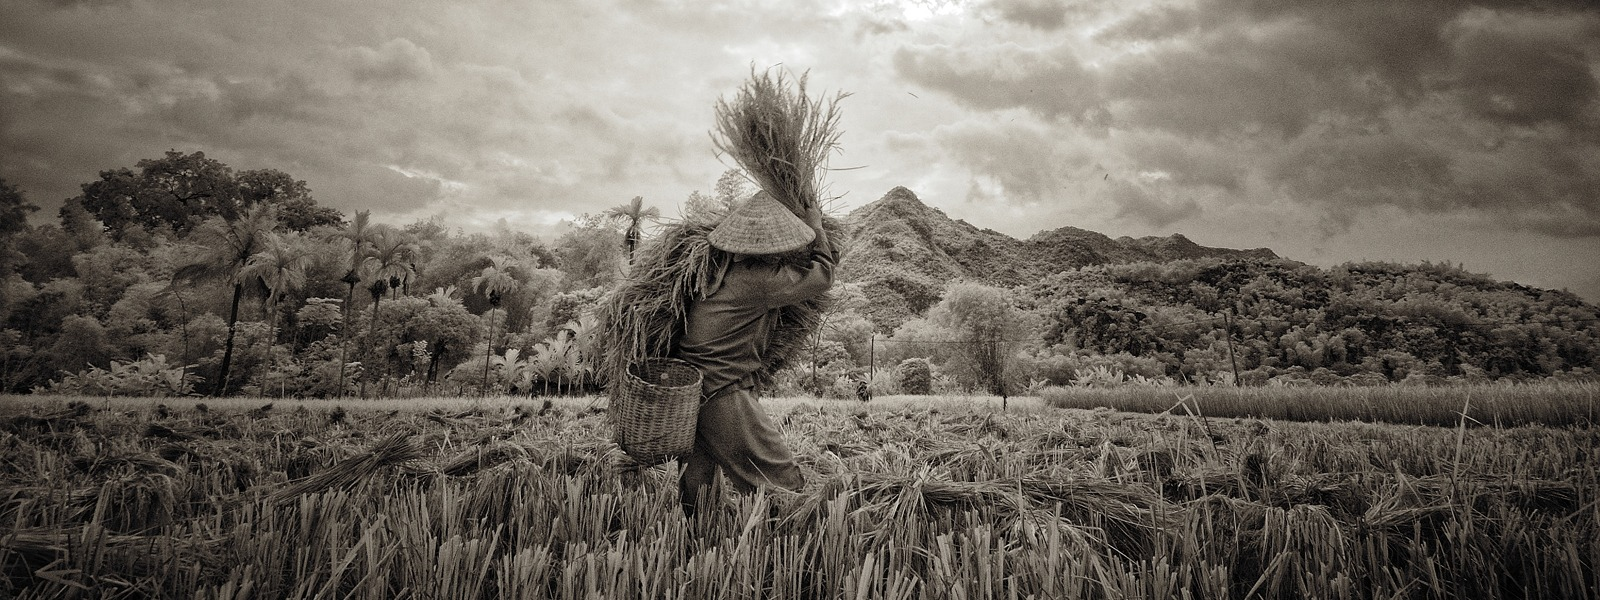 Reportage, Vietnam, infrared, Photographer, Photojournalistic, School, Travel